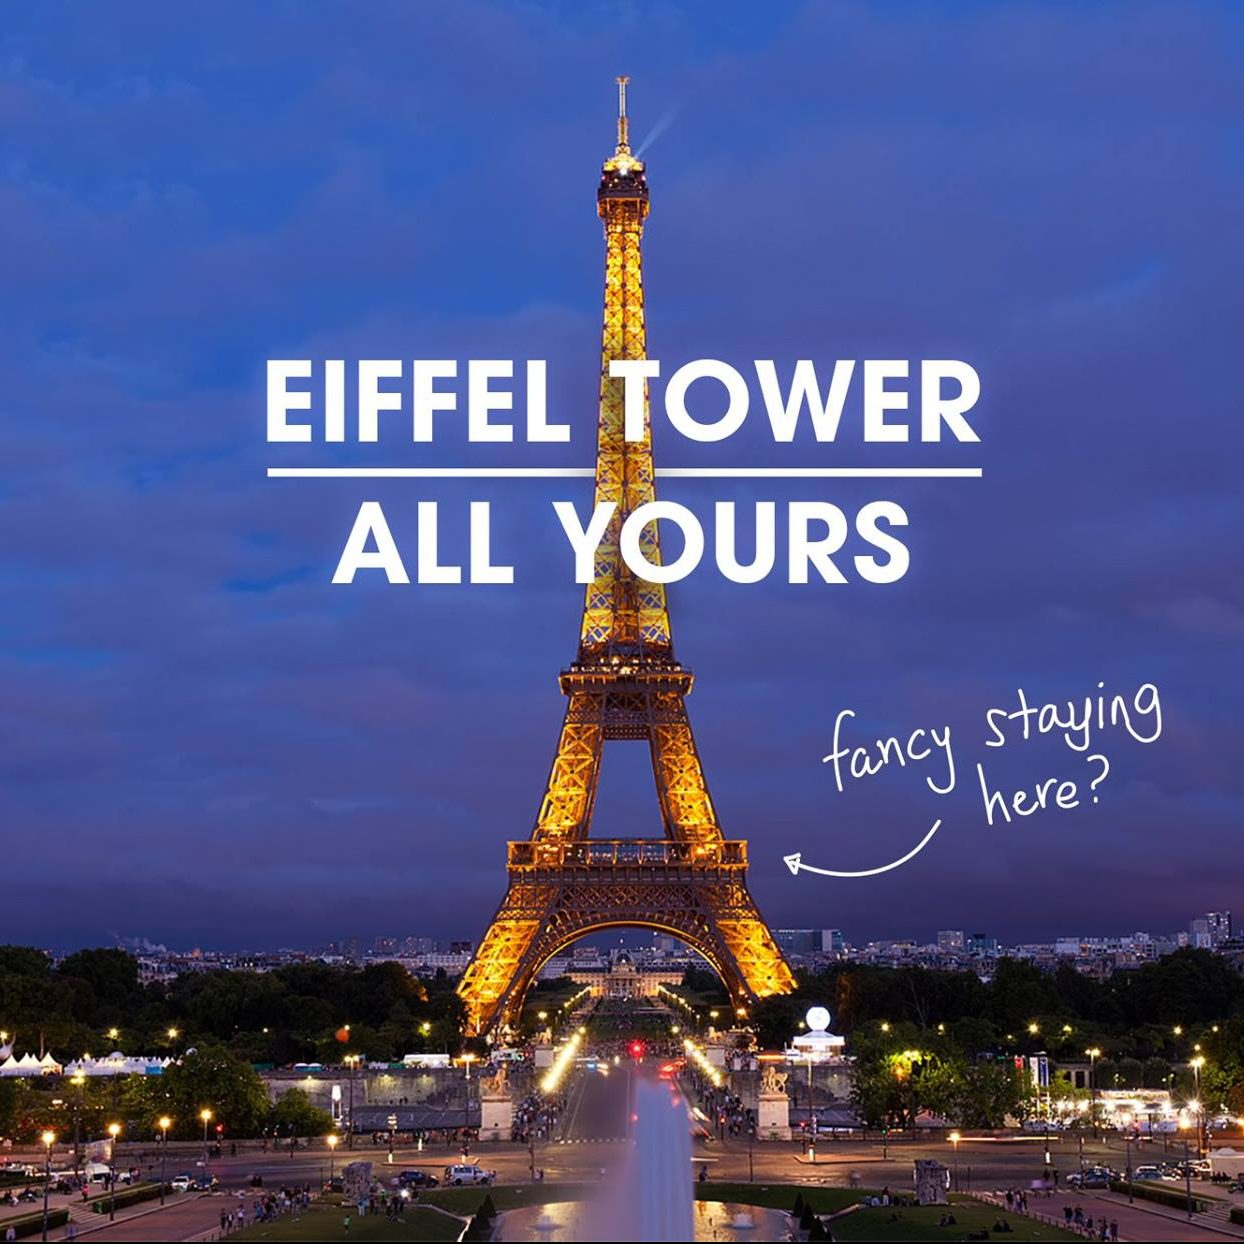 HomeAway Once-in-a-lifetime Opportunity Spend a Night at Eiffel Tower - Why Not Deals & Promotions